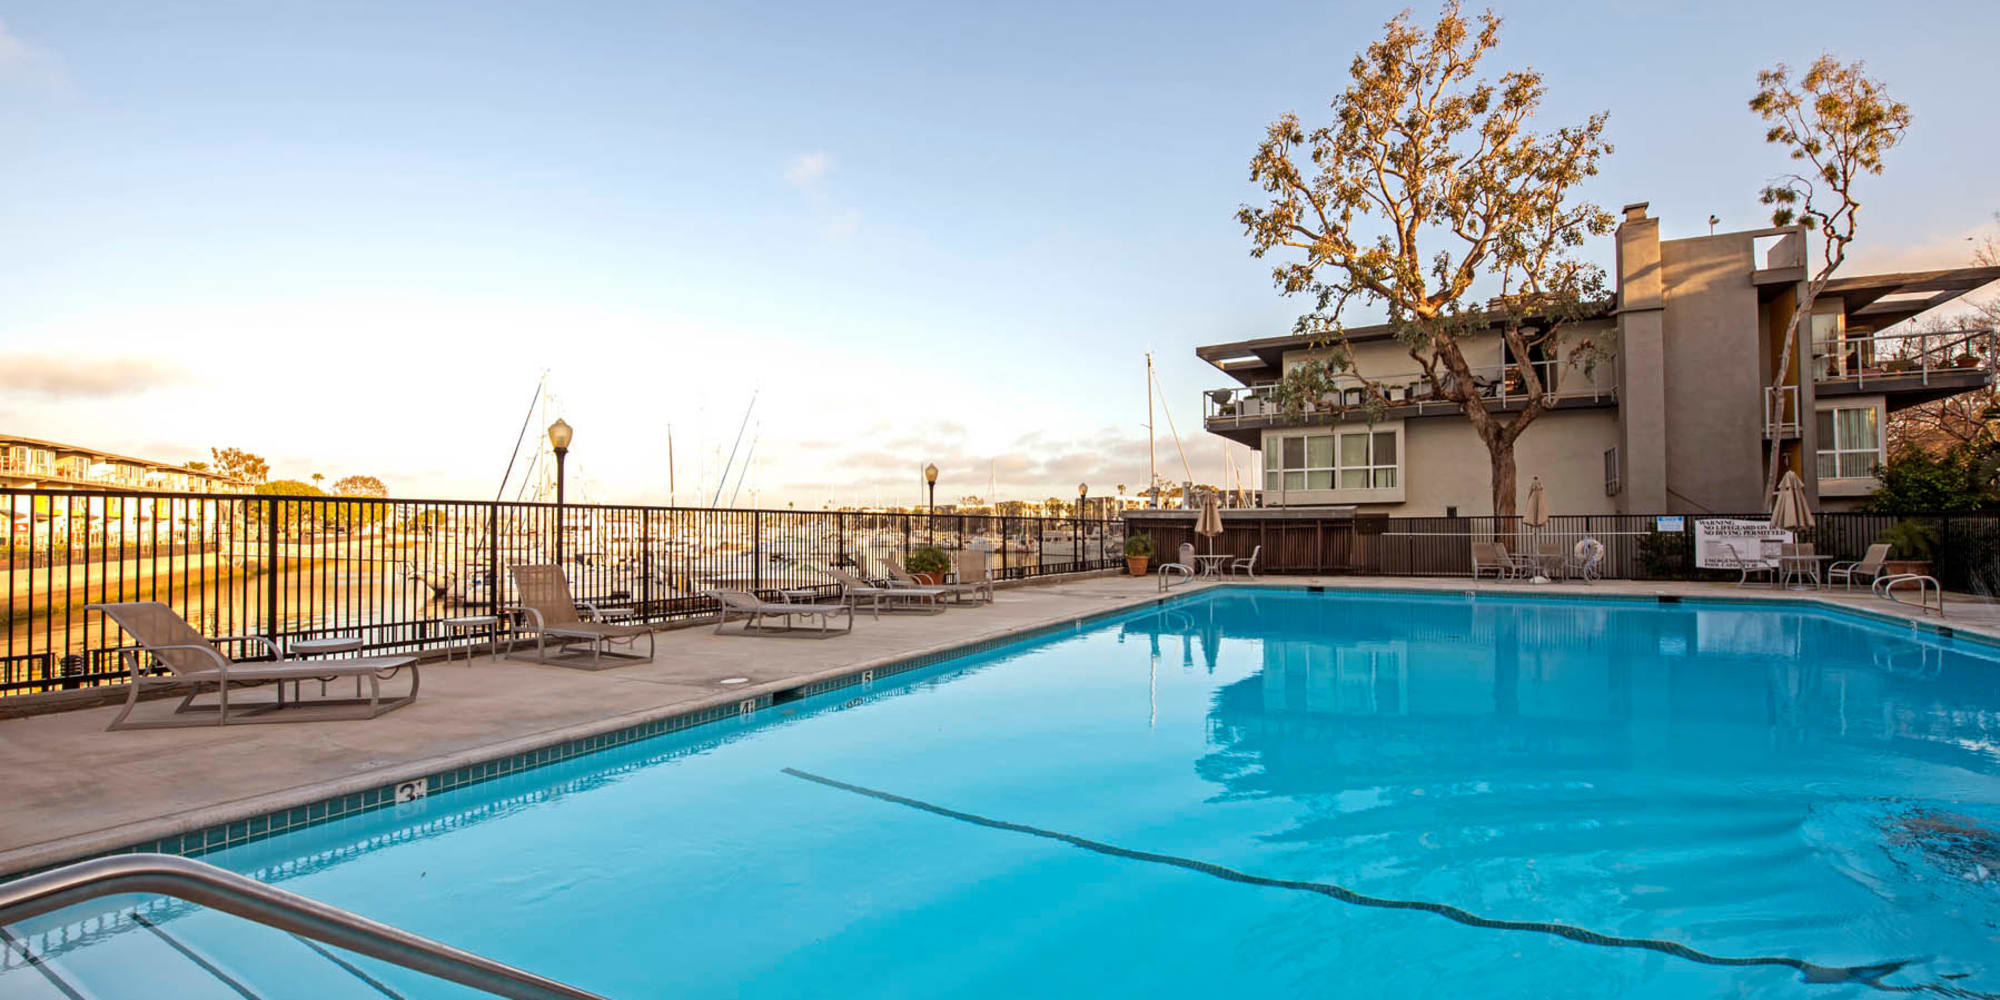 Late afternoon at a swimming pool overlooking the marina at The Tides at Marina Harbor in Marina Del Rey, California